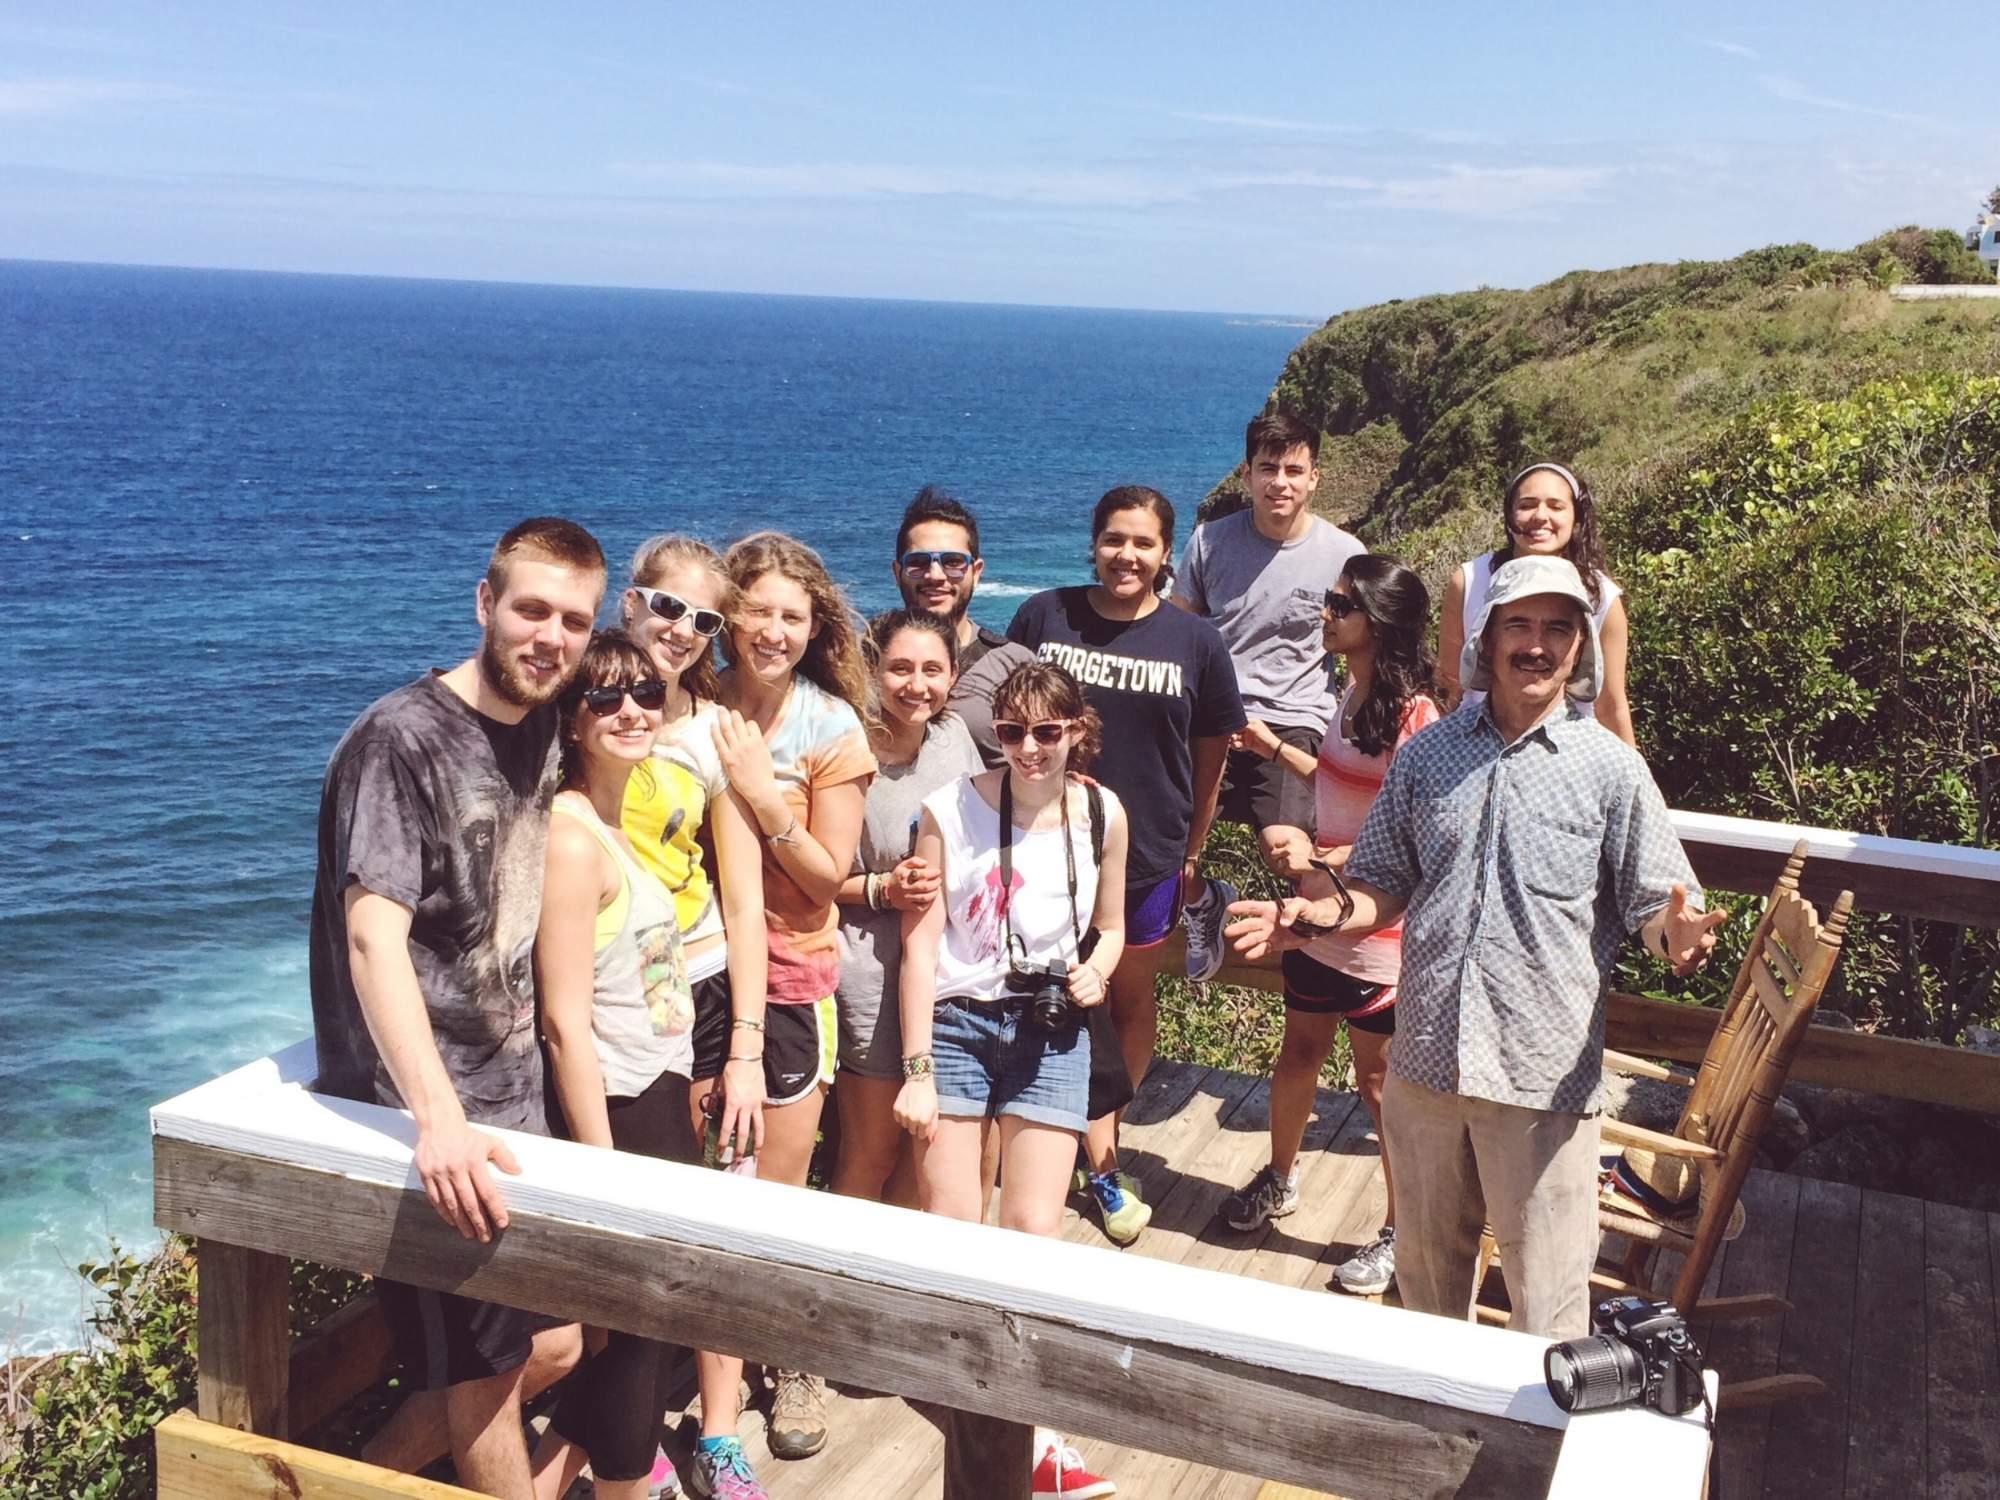 Georgetown University and Skidmore College Students on the cliff's of Puerto Rico